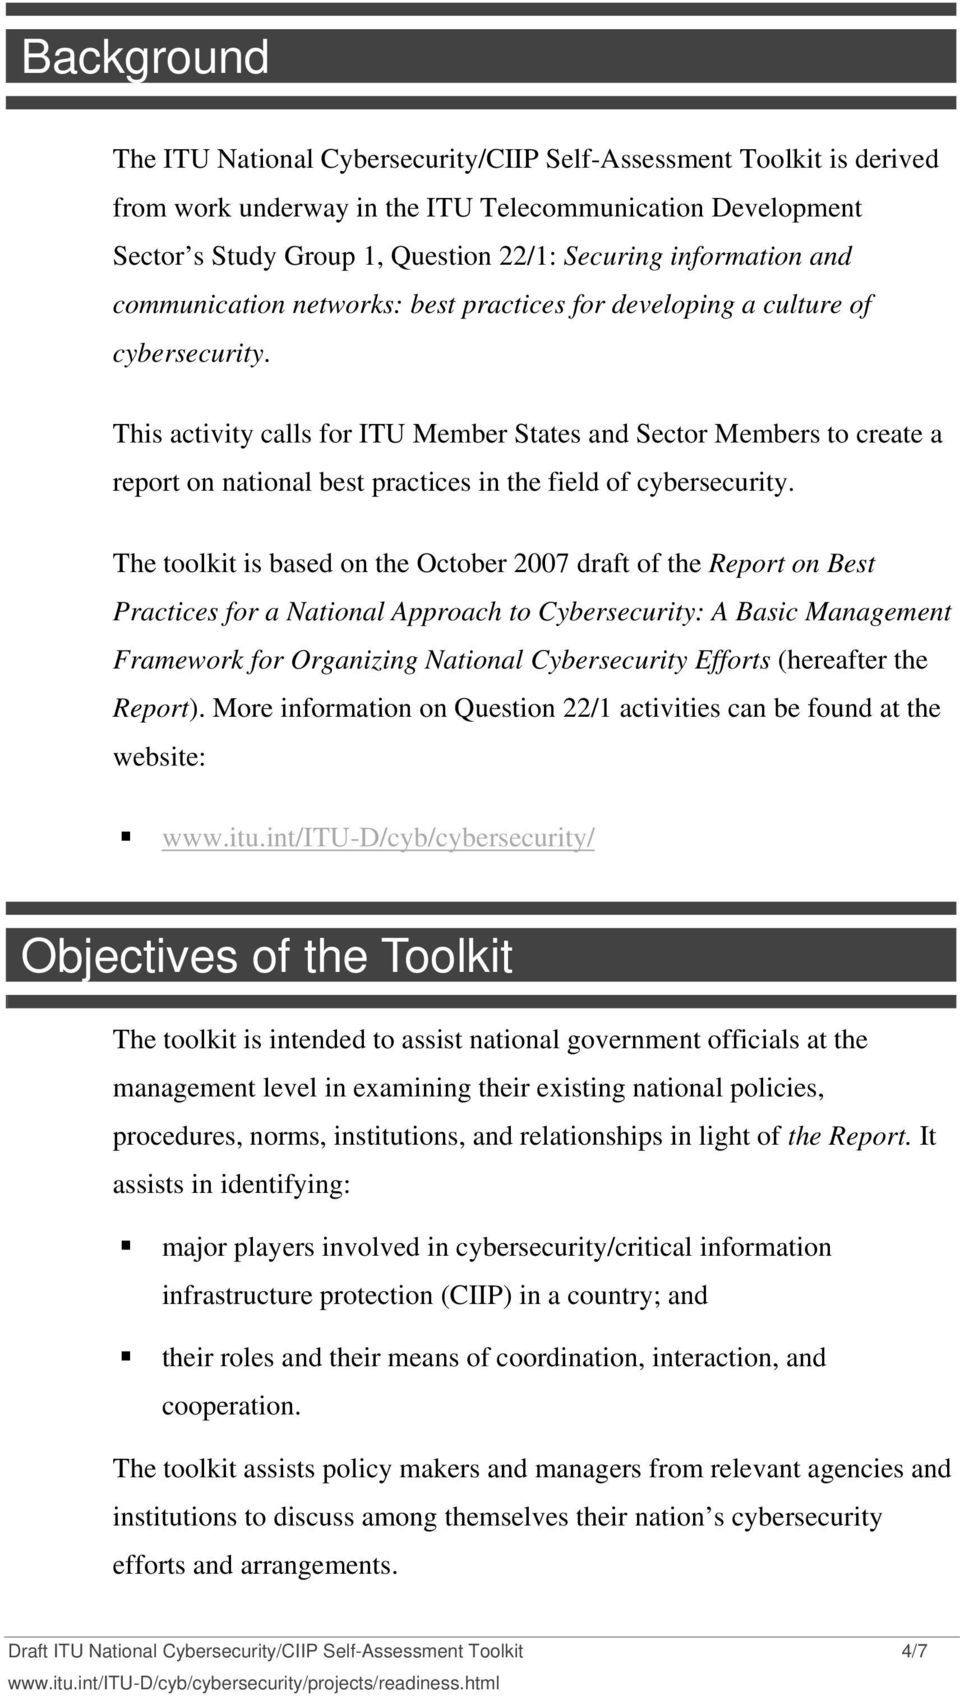 This activity calls for ITU Member States and Sector Members to create a report on national best practices in the field of cybersecurity.